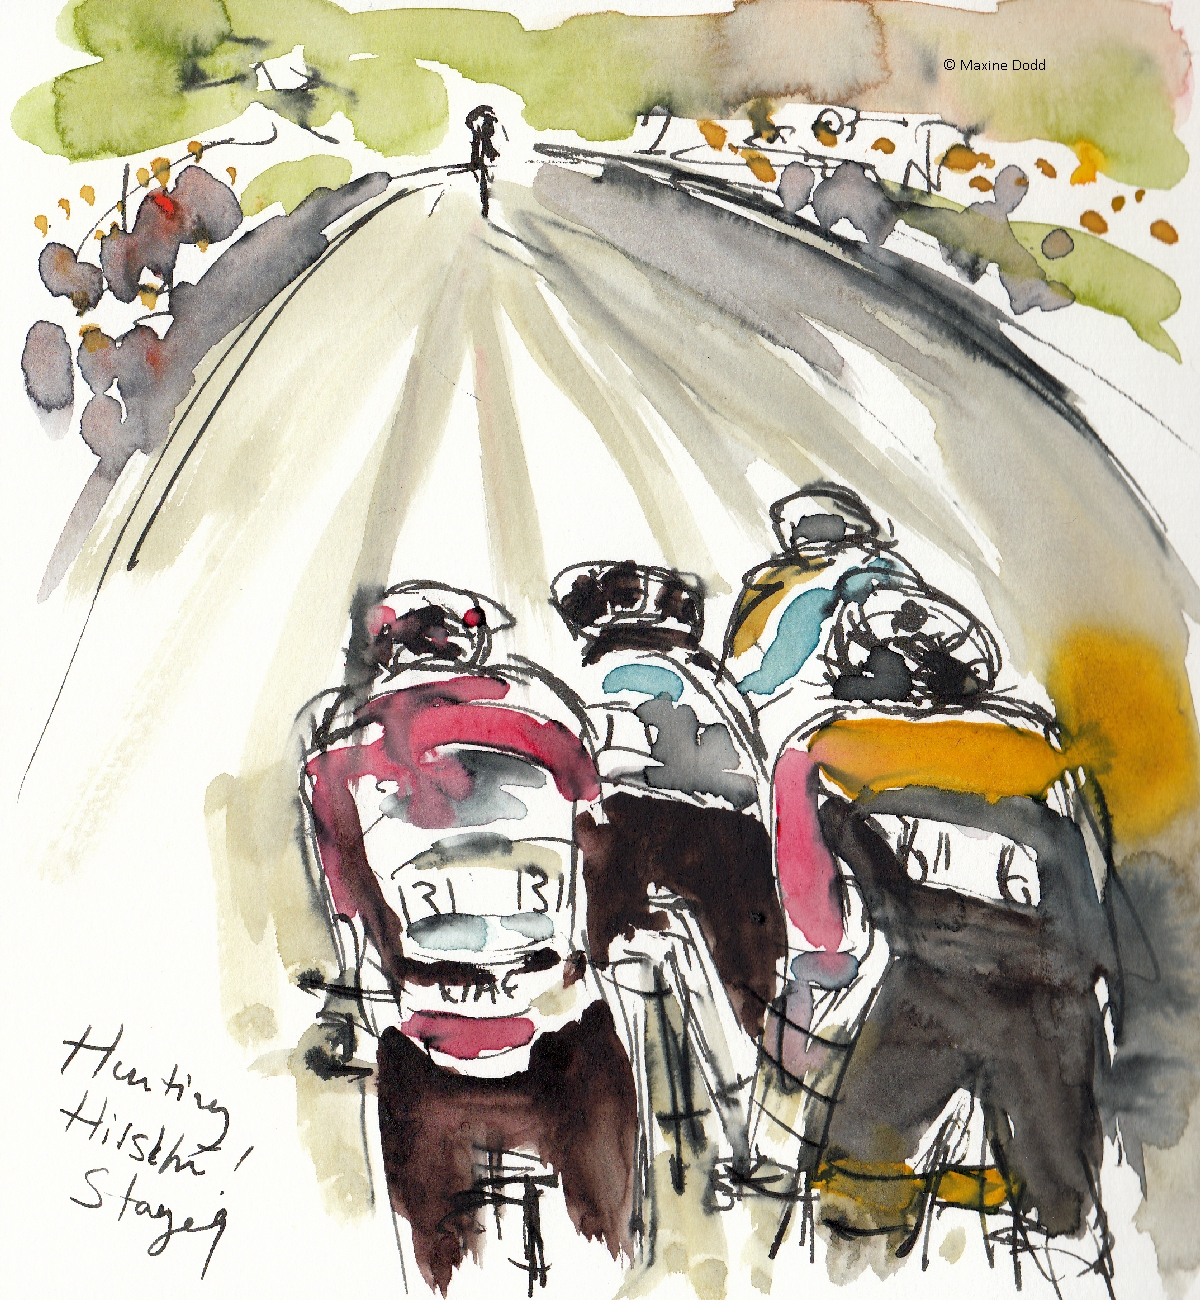 Hunting Hirschi, watercolour, pen and ink, by Maxine Dodd